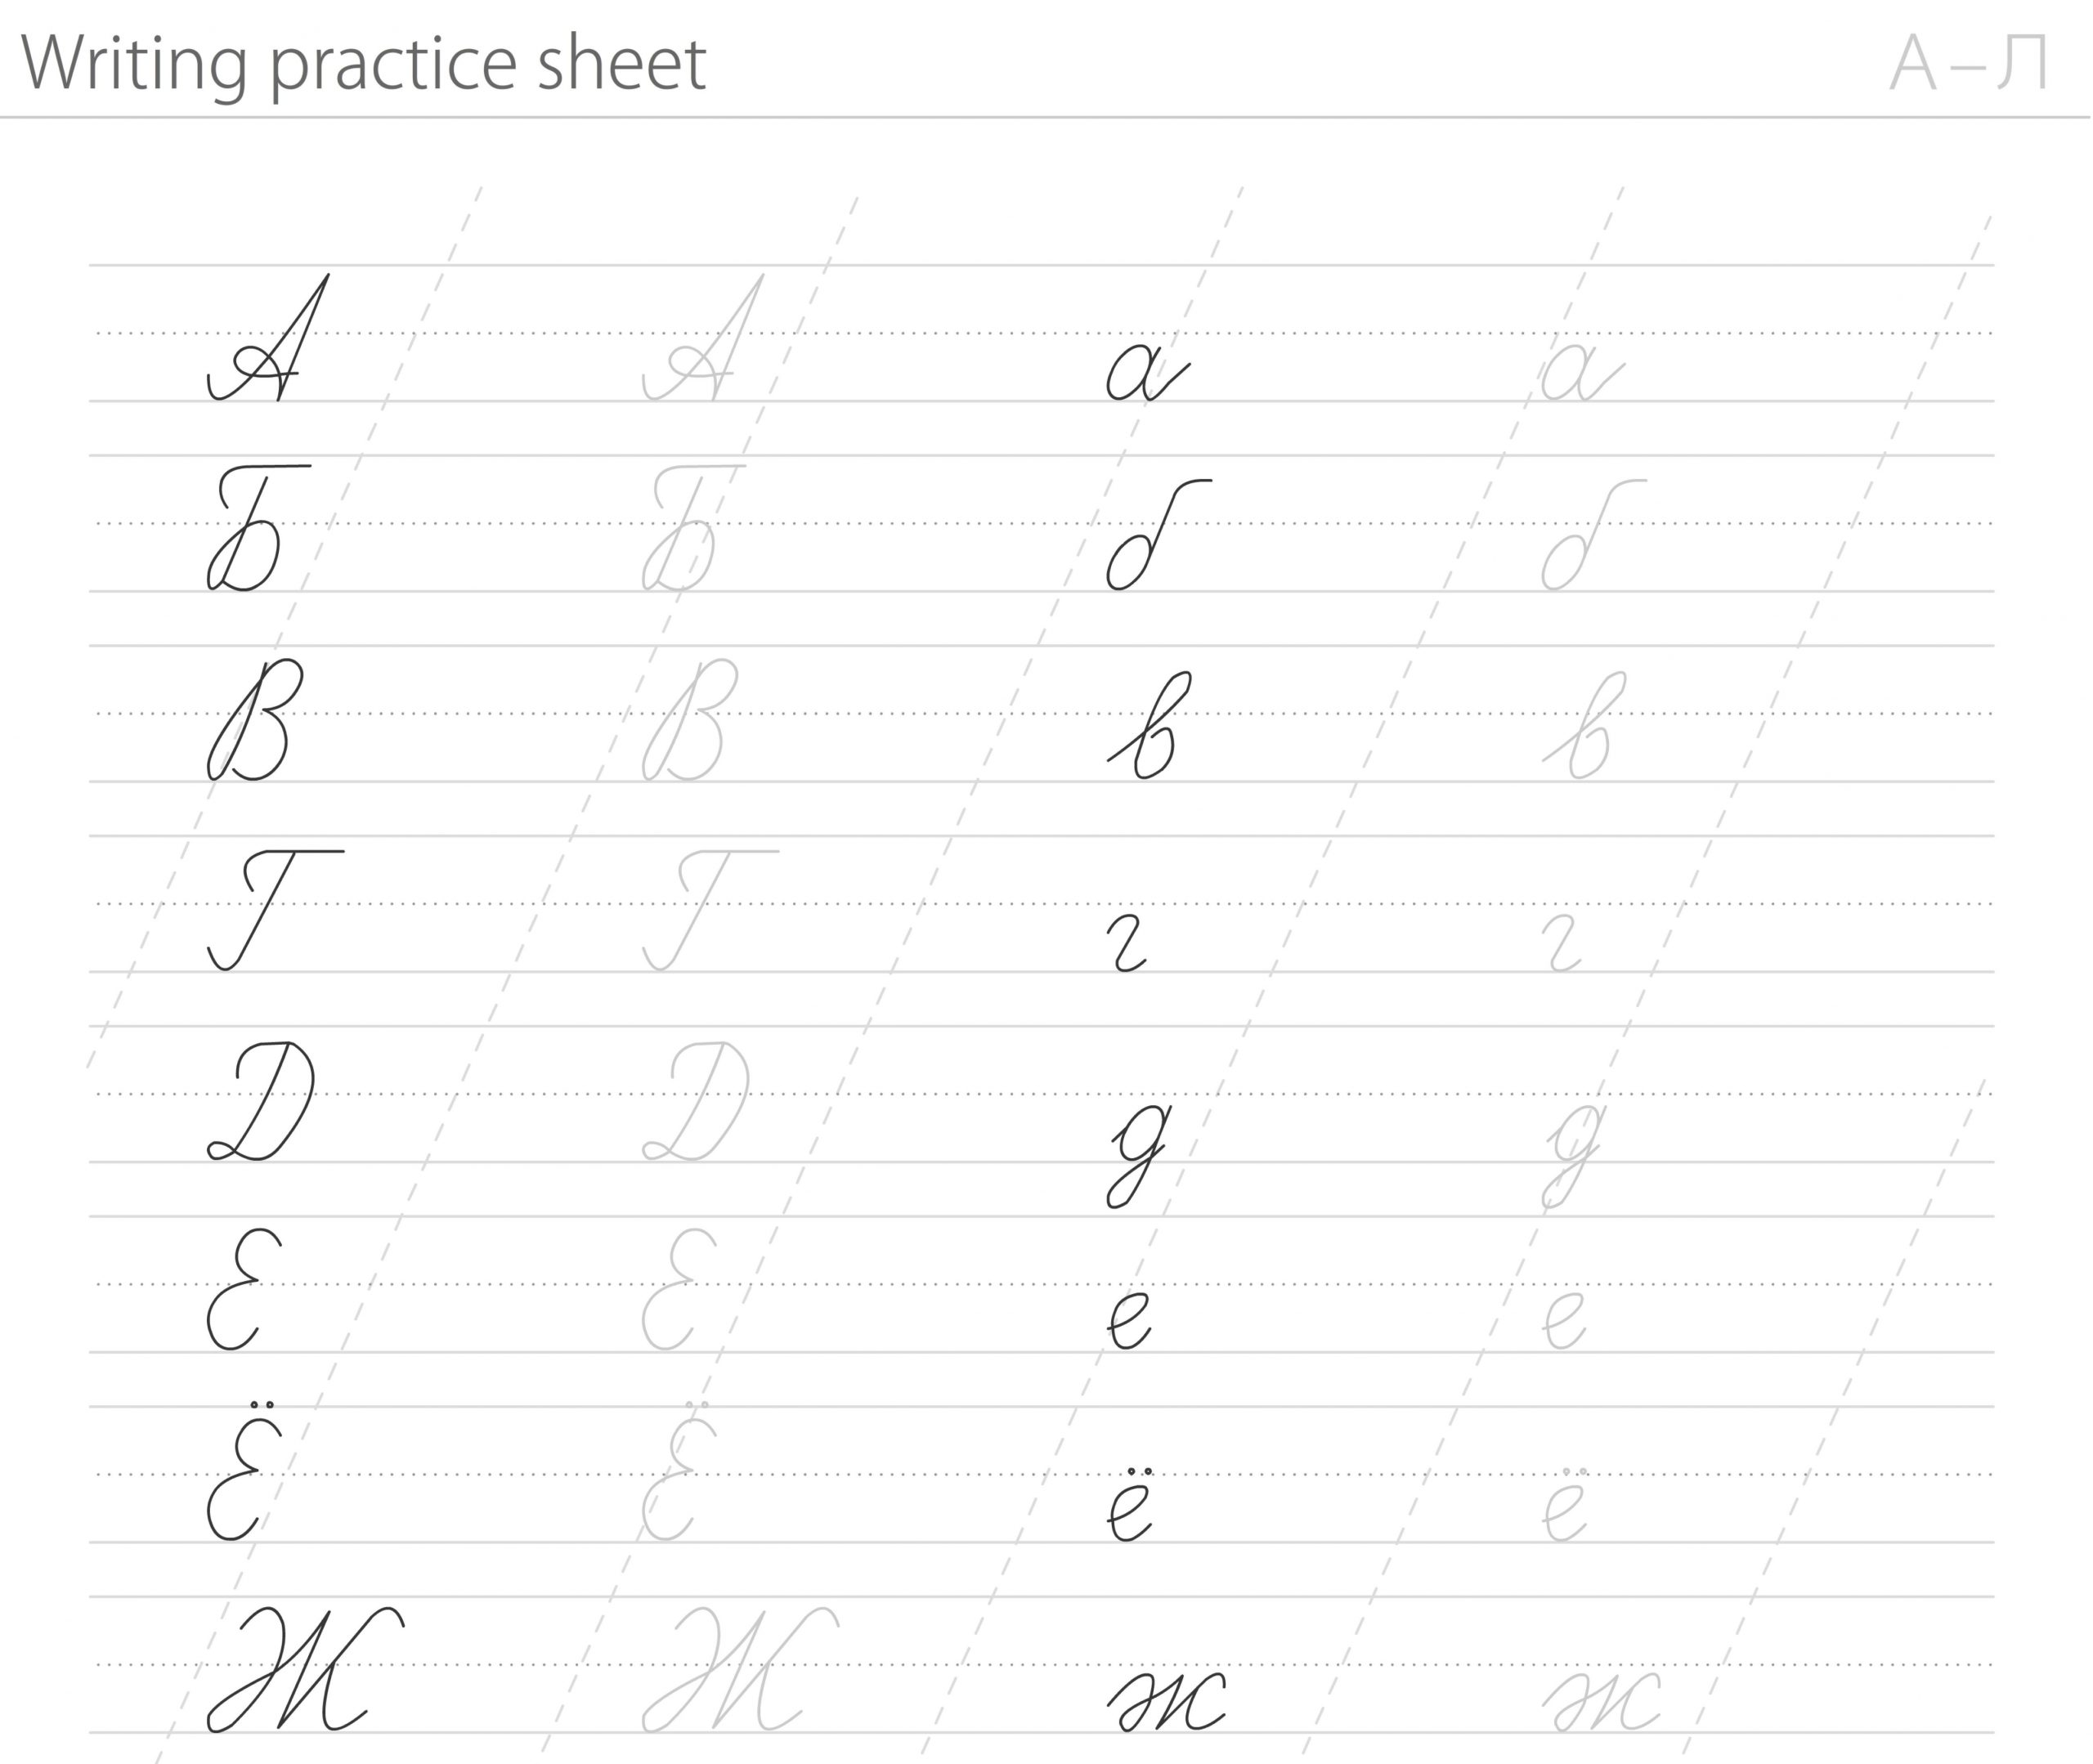 Russian Alphabet Printable Worksheets Practice Your Russian Cursive Writing with This Free